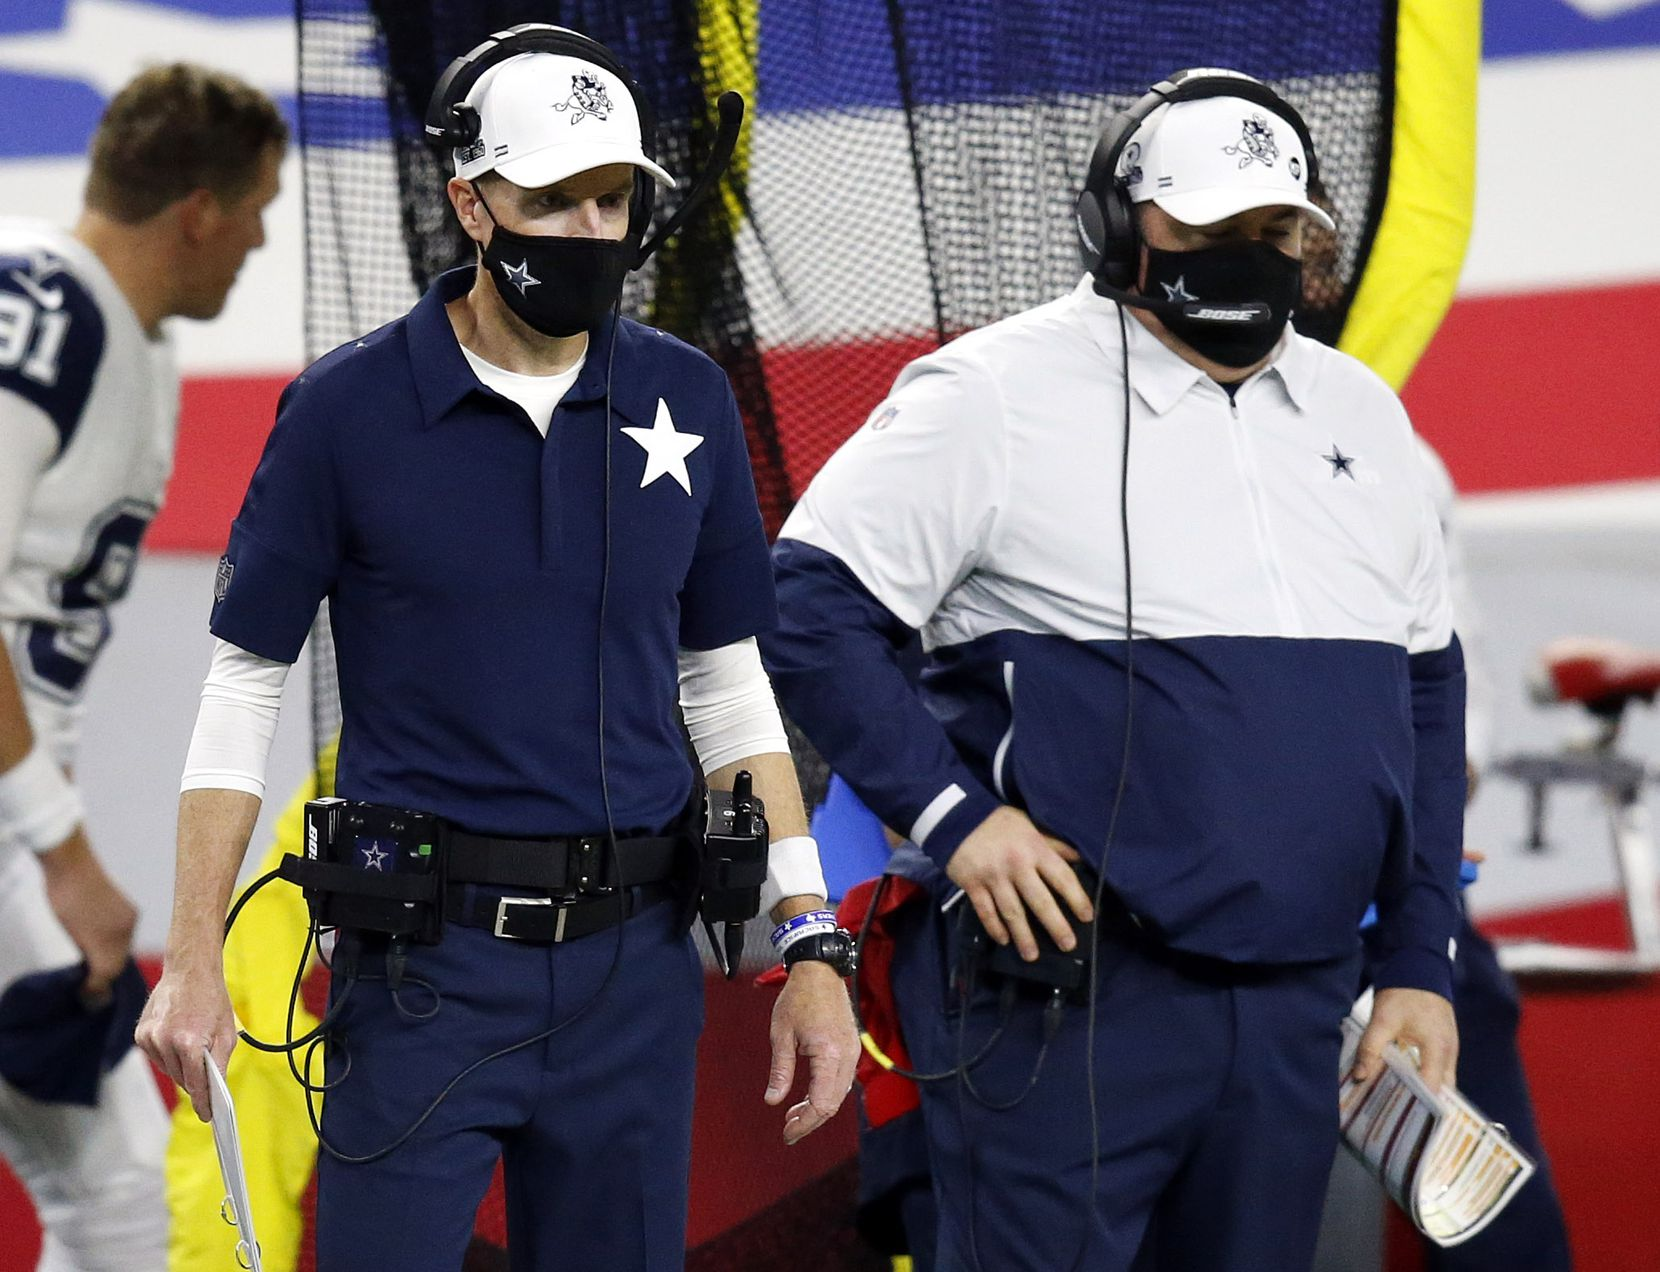 Dallas Cowboys special teams coordinator John Fassel (left) and head football coach Mike McCarthy watch their team play after they didn't convert a fourth down on a fake punt in the fourth quarter at AT&T Stadium in Arlington, Thursday, November 26, 2020. The Cowboys lost, 41-16. (Tom Fox/The Dallas Morning News)